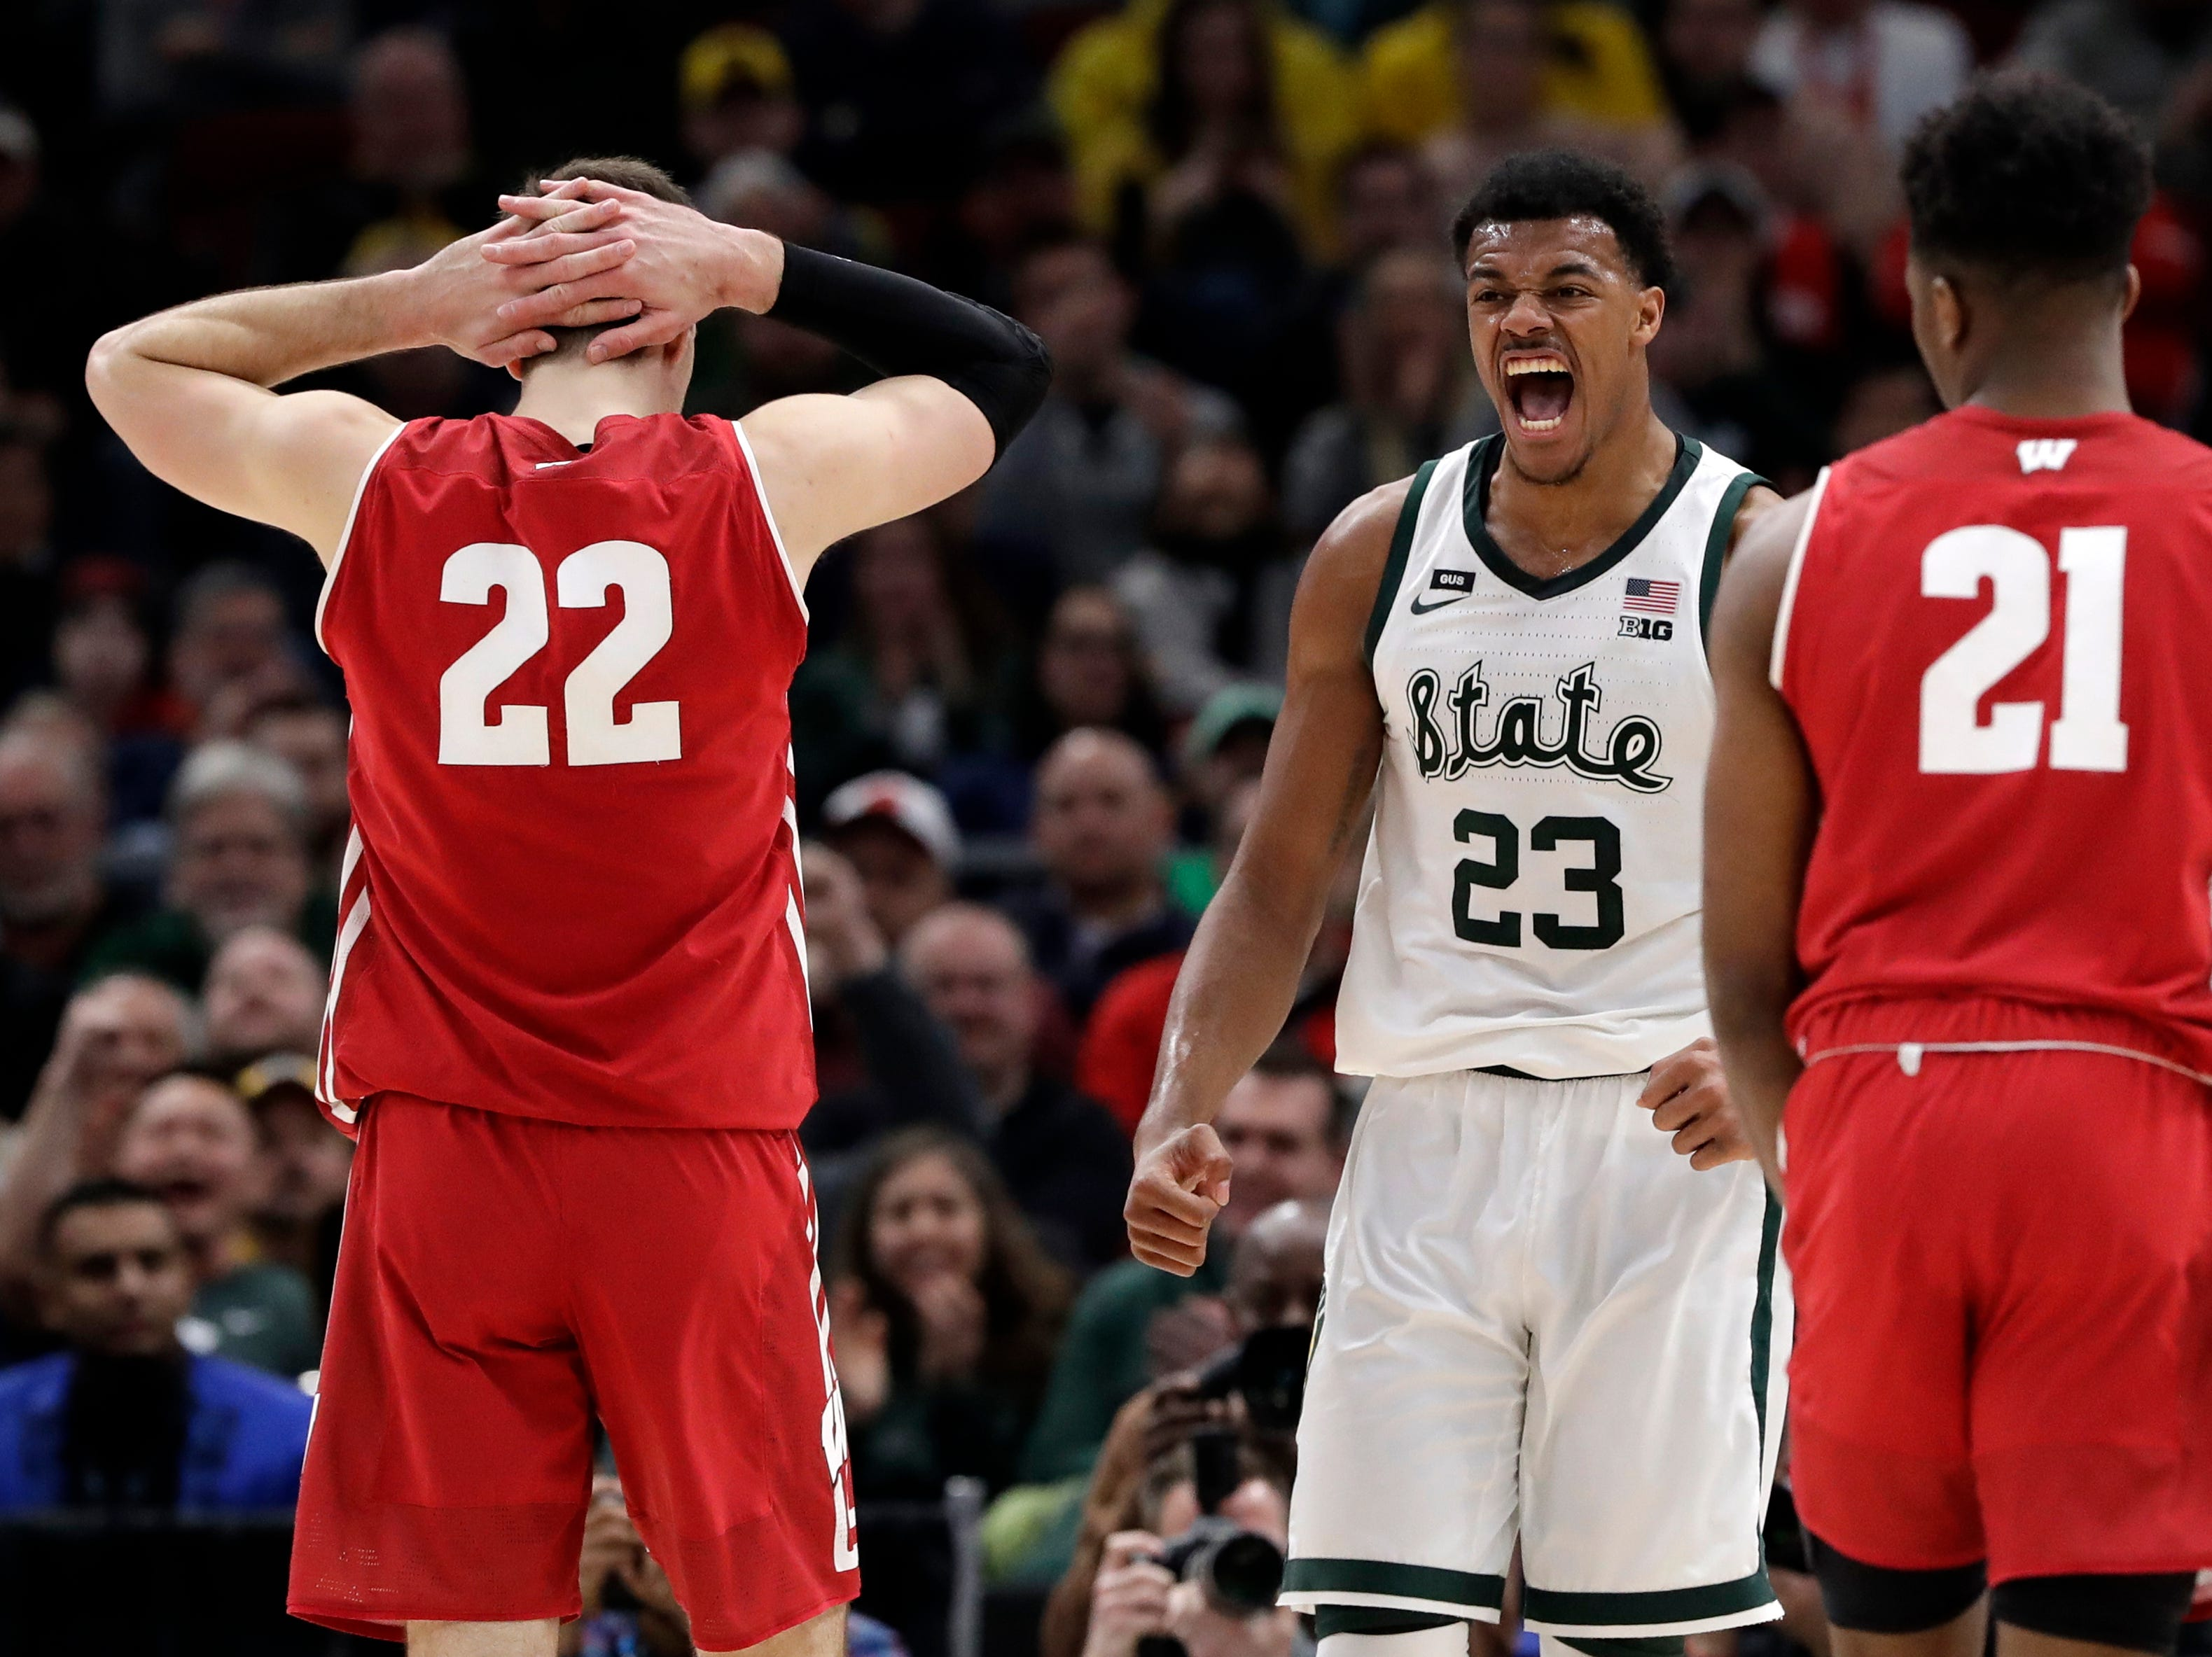 Michigan State's Xavier Tillman (23) reacts during the first half of an NCAA college basketball game against Wisconsin in the semifinals of the Big Ten Conference tournament, Saturday, March 16, 2019, in Chicago.